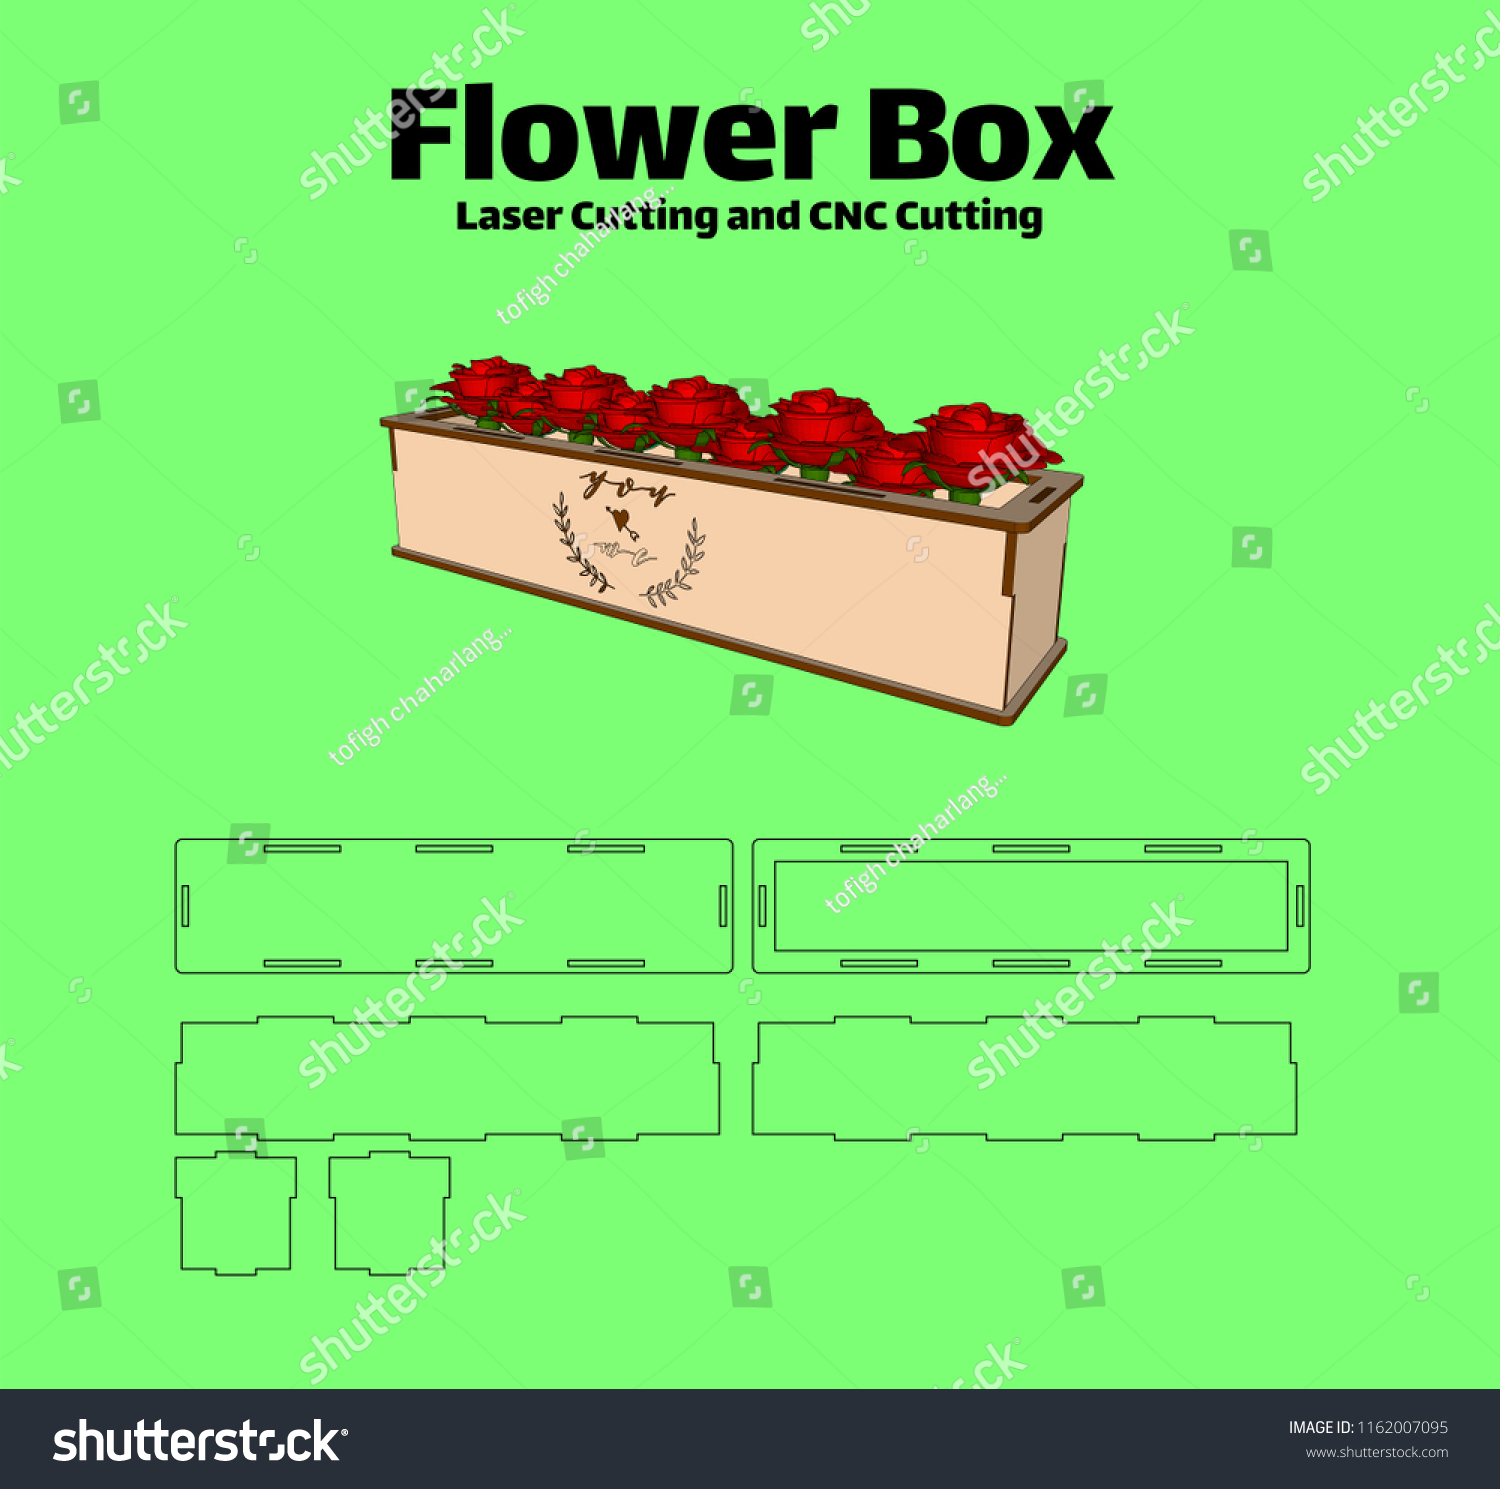 hight resolution of laser cutting flower box without using glue for wood 3 mm